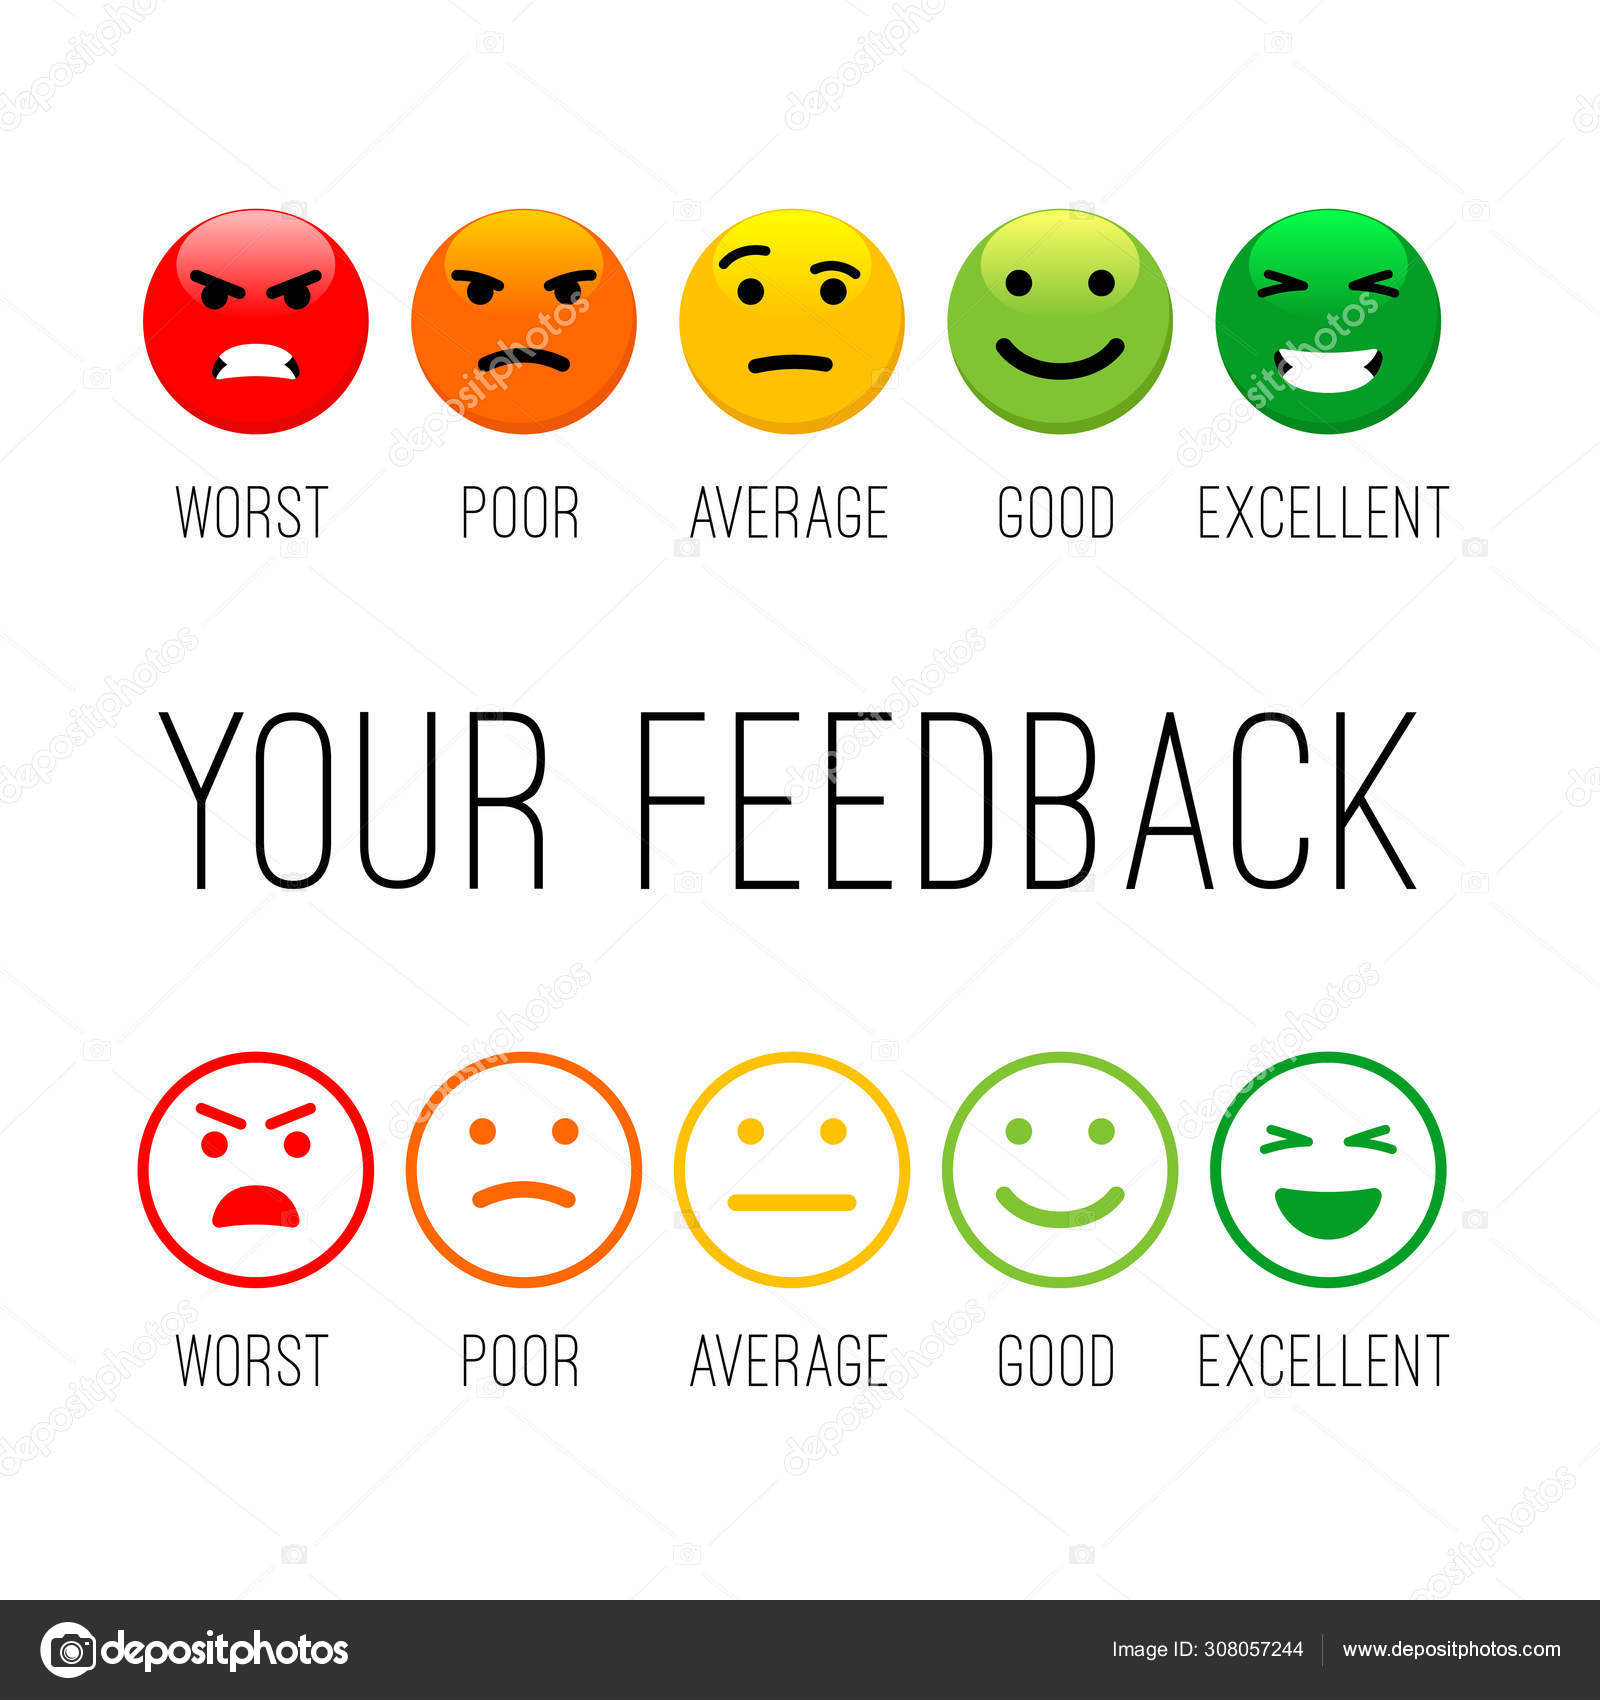 feedback emotion icons stock vector c ssstocker 308057244 feedback emotion icons stock vector c ssstocker 308057244